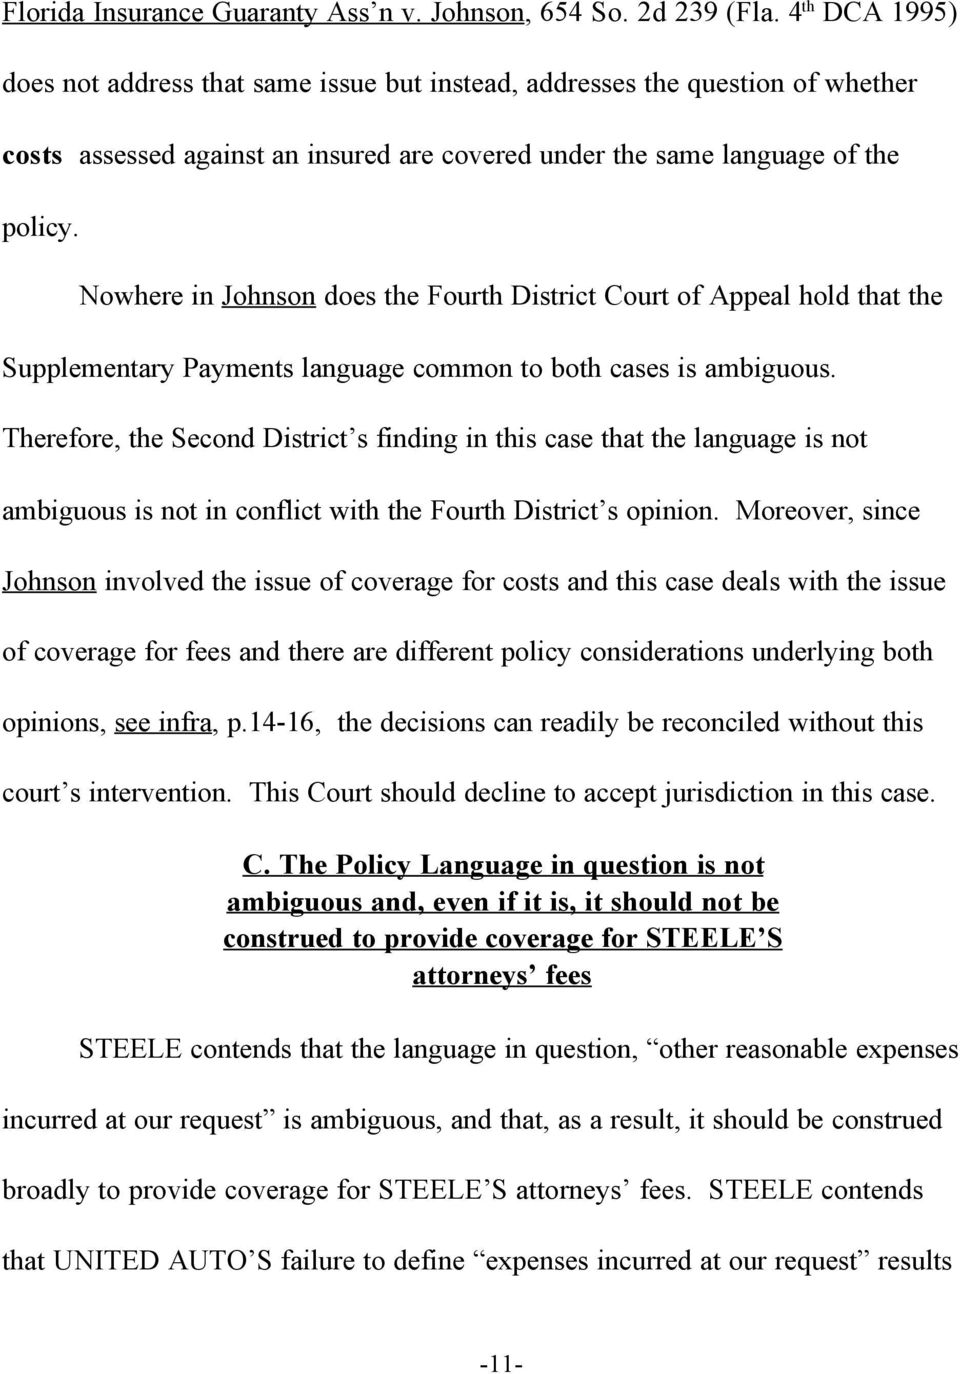 Nowhere in Johnson does the Fourth District Court of Appeal hold that the Supplementary Payments language common to both cases is ambiguous.